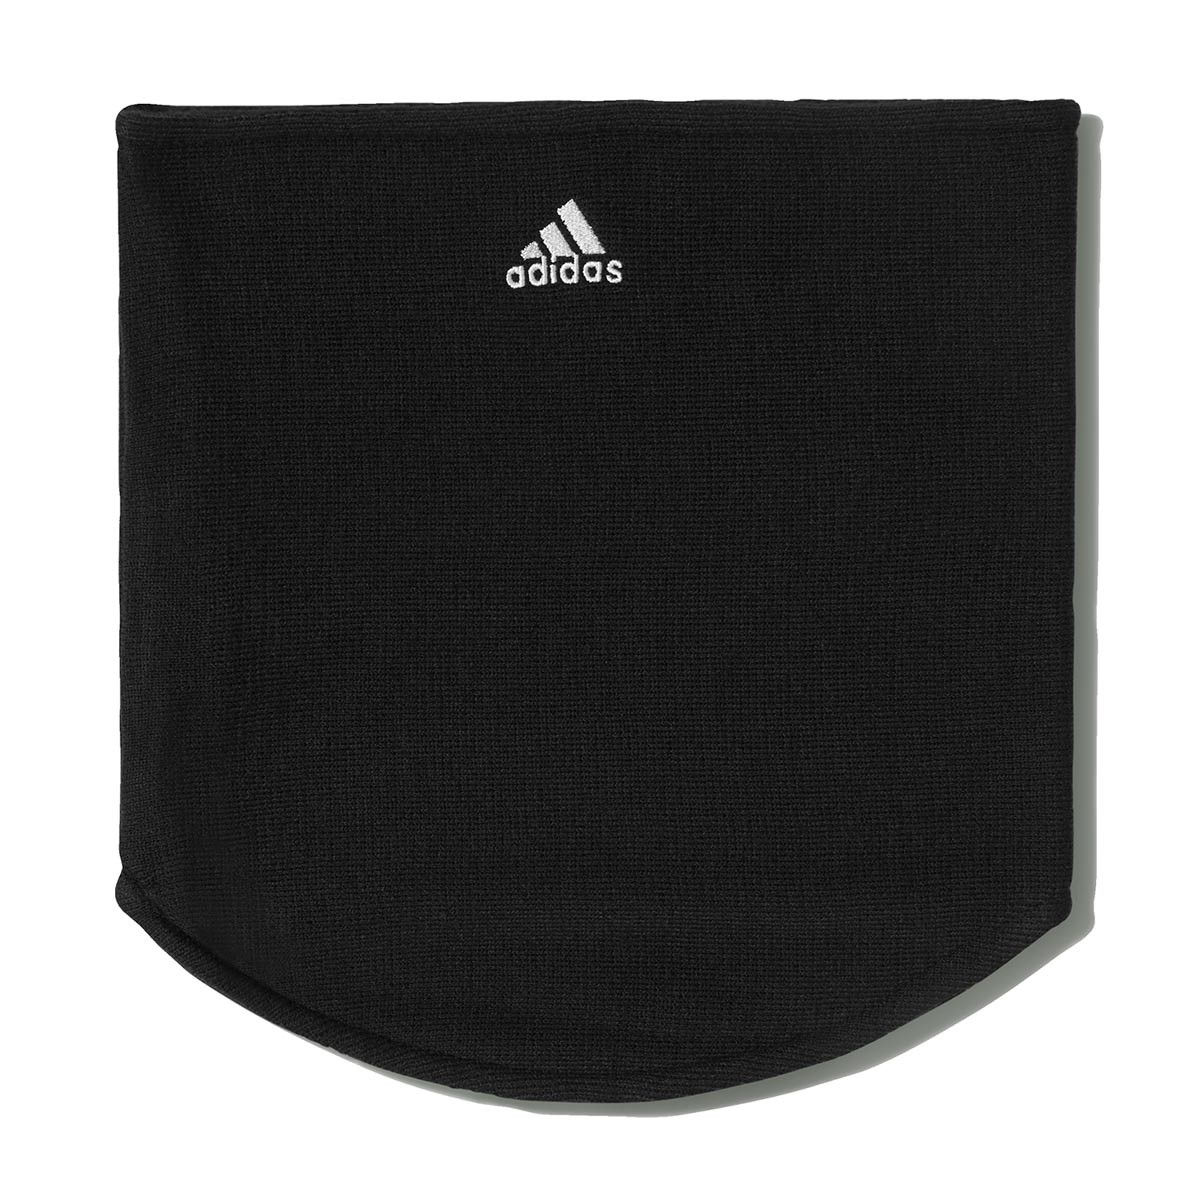 florero inversión Alboroto  Neck Warmer adidas Neckwarmer Black-White - Football store Fútbol Emotion